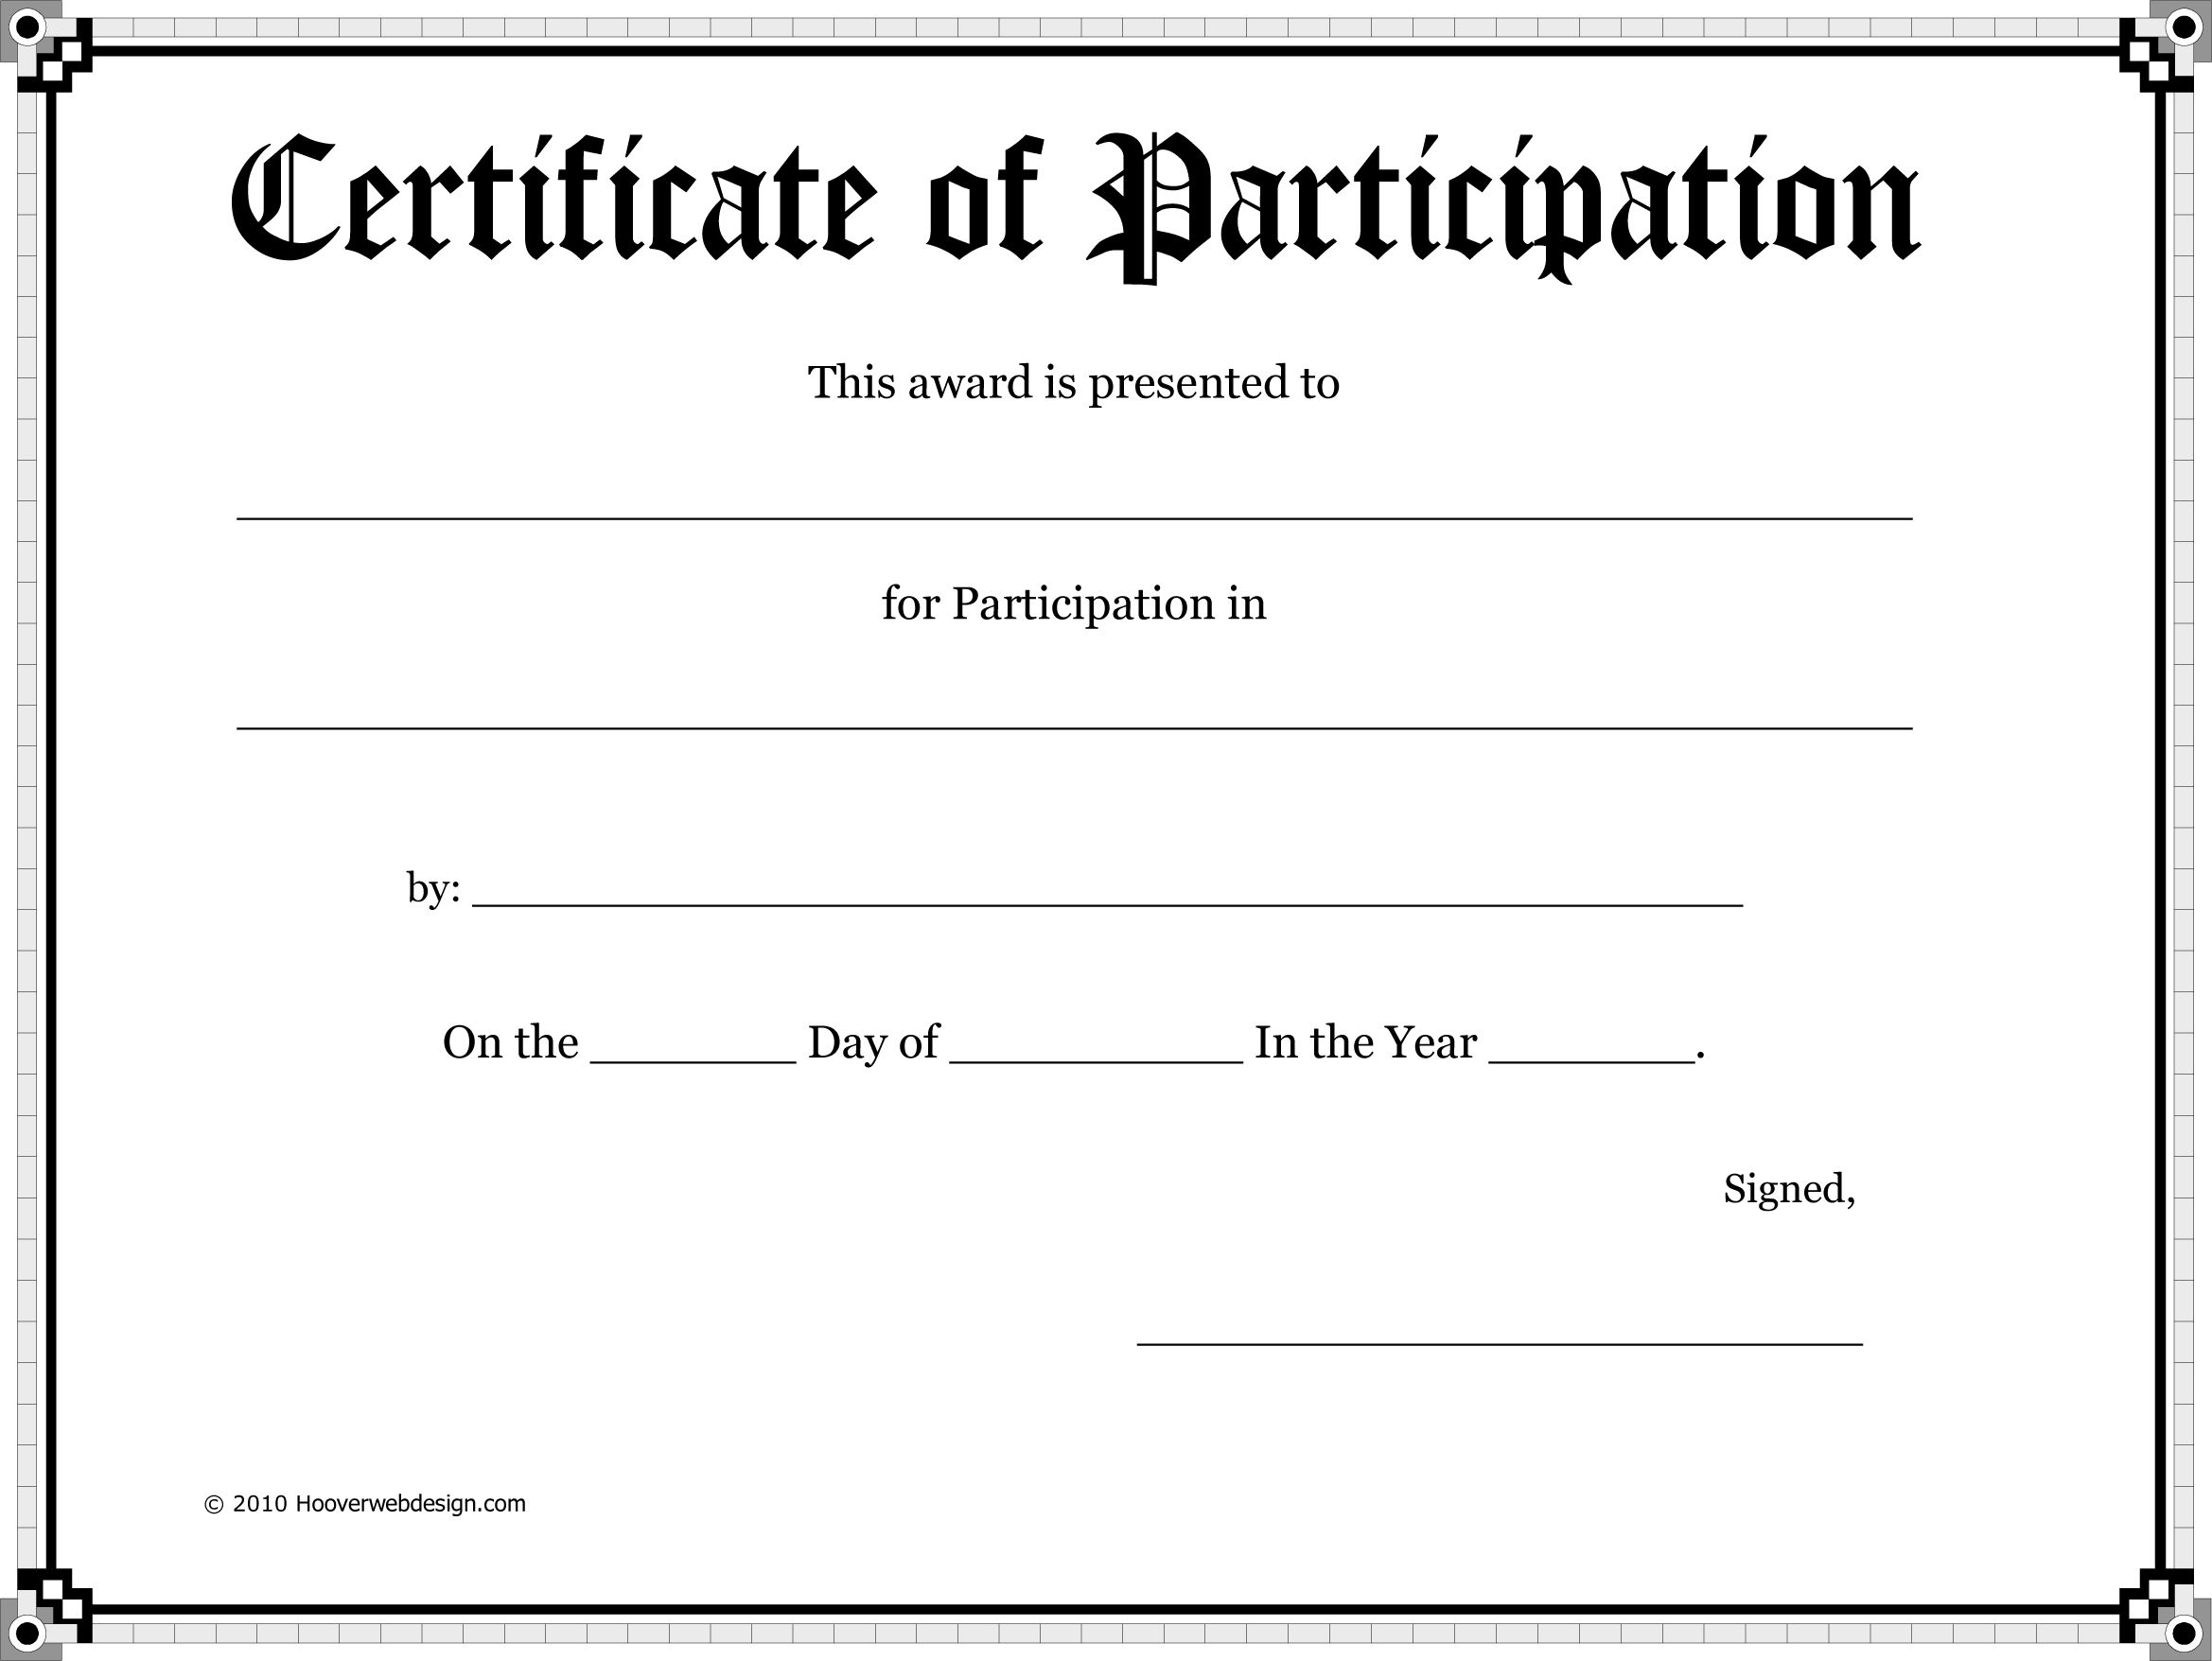 Certificate Of Participation Template Word Certificate Of Participation Template Awards Certificates Template Free Printable Certificate Templates Certificate of participation template word